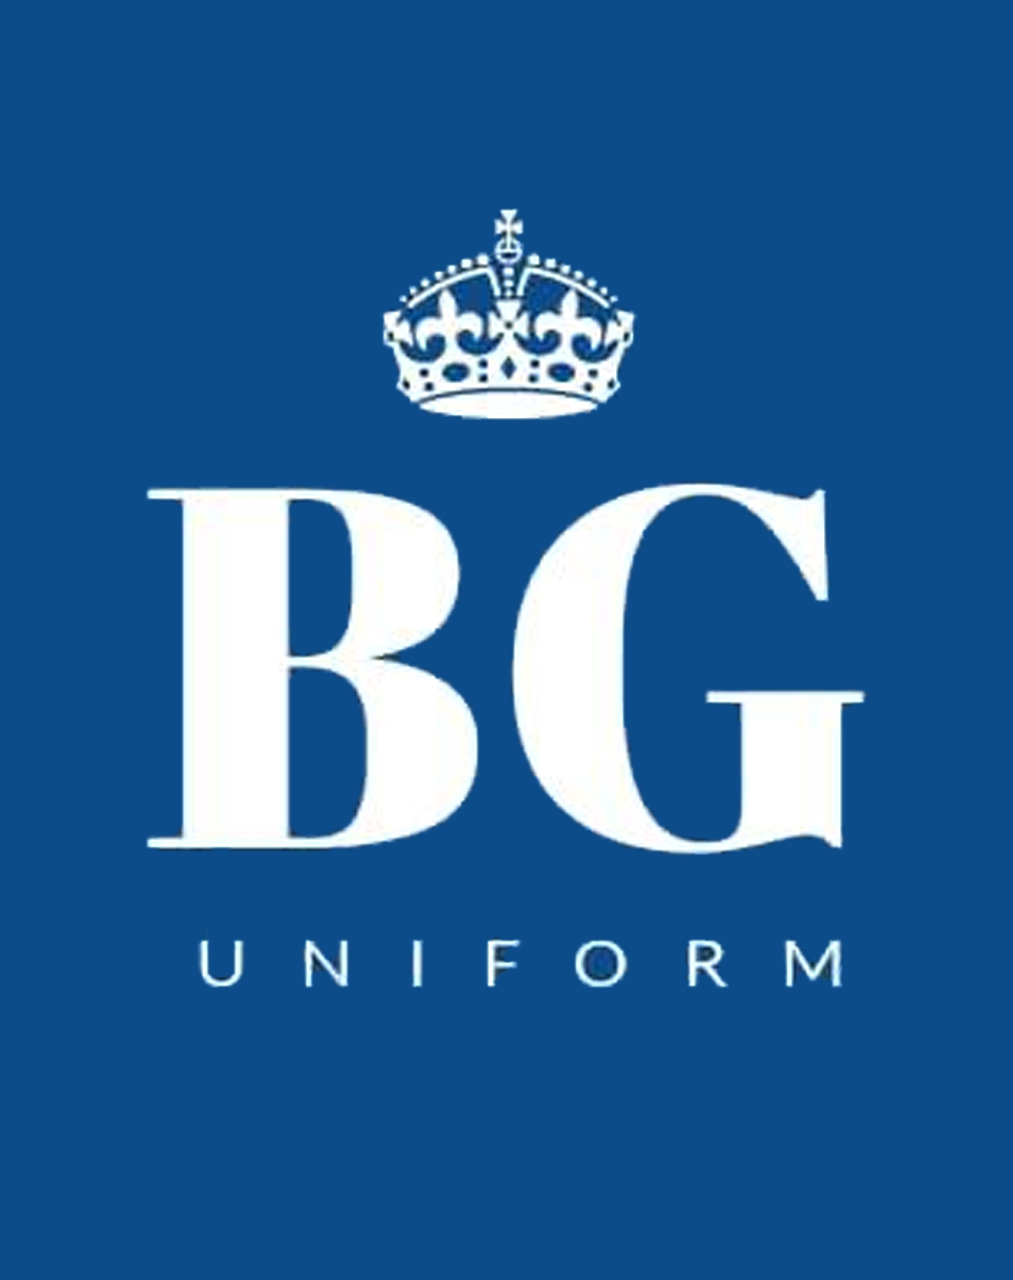 BALAJI GARMENT <BR> SCHOOL UNIFORM SPECIALIST